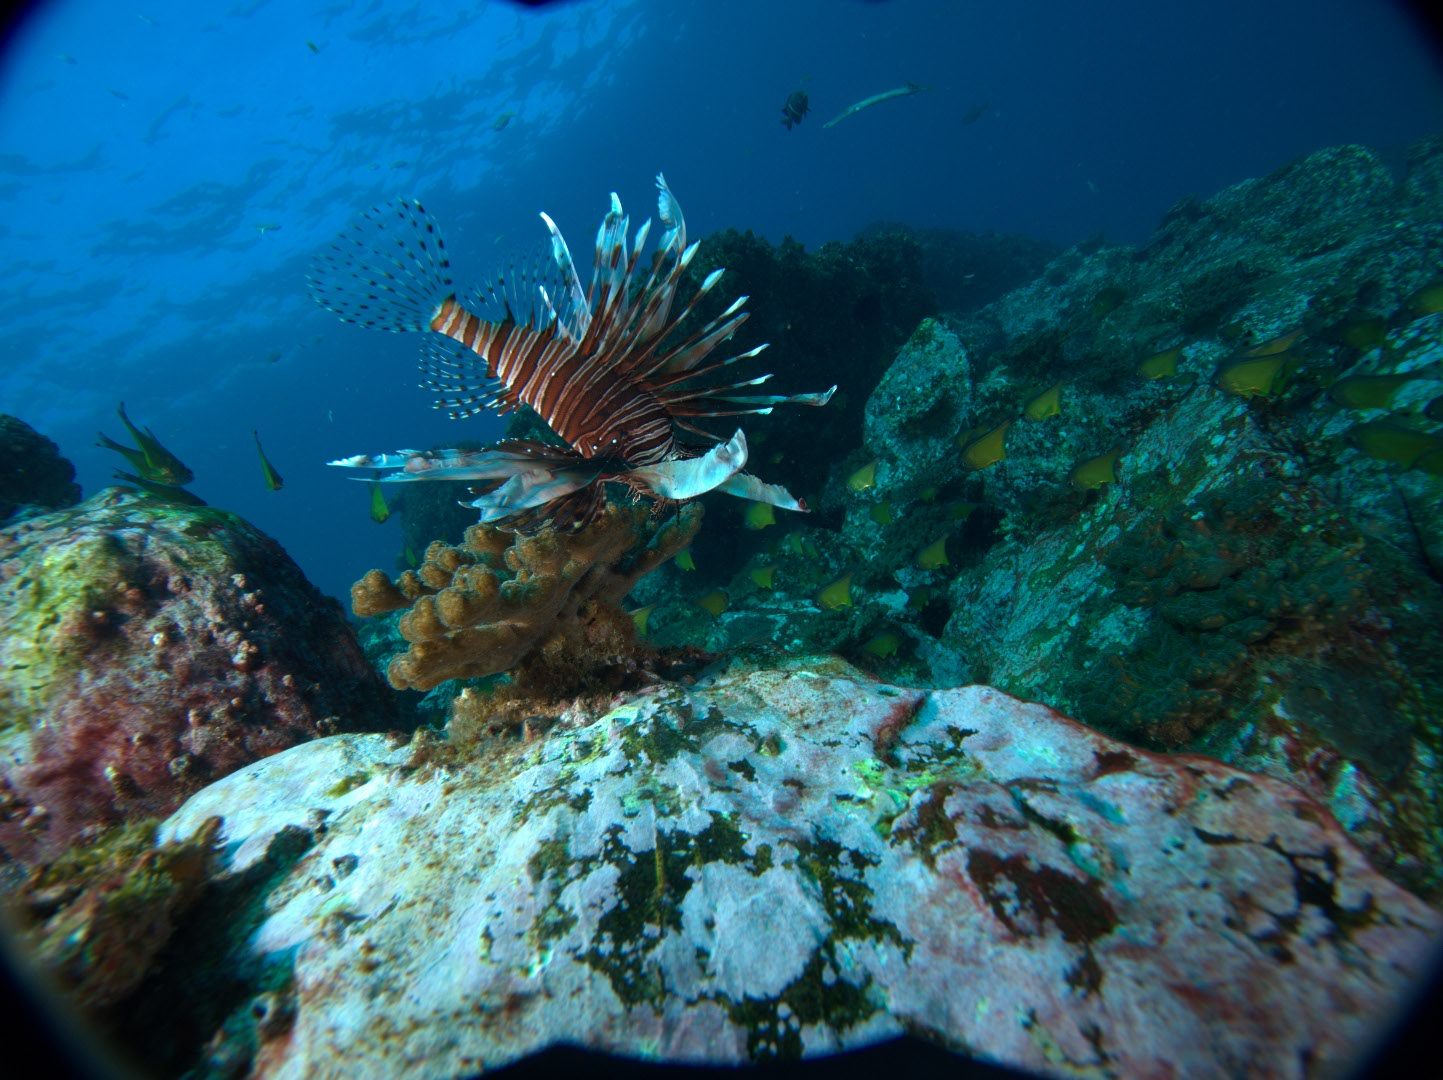 Lionfish 12.11.17 at South Solitary Island